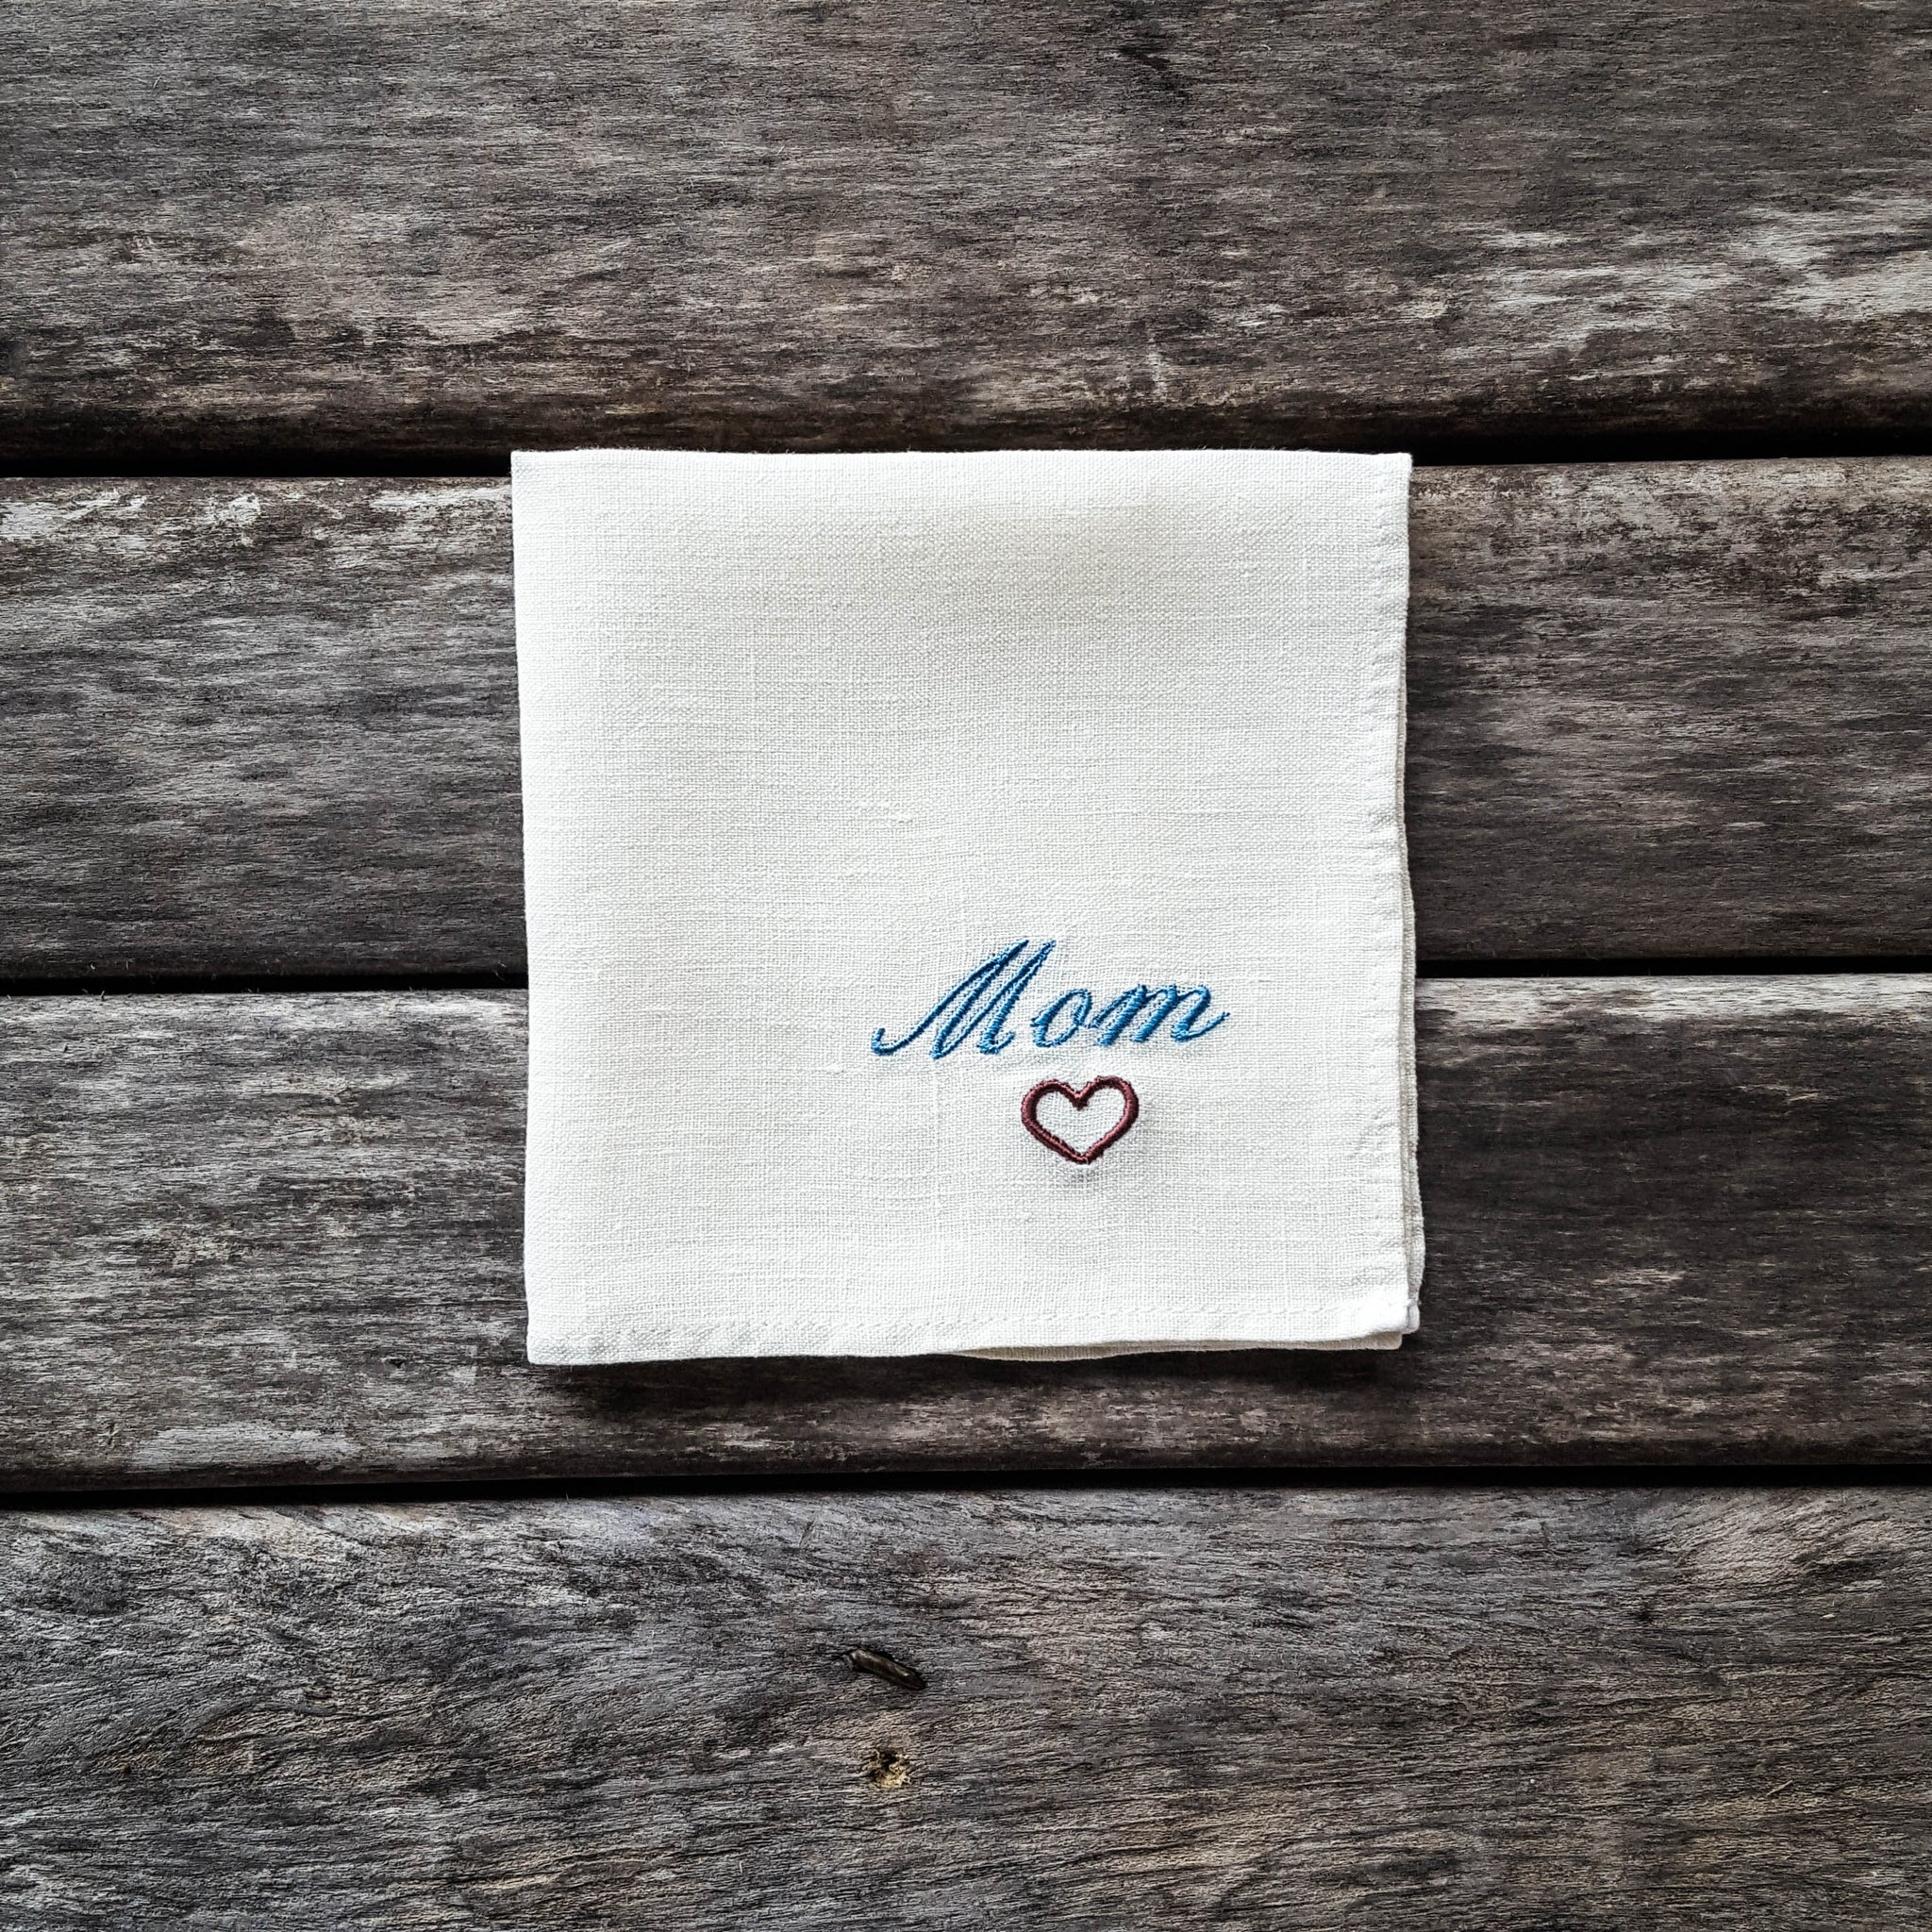 White embroidered linen handkerchief, Mom handkerchief